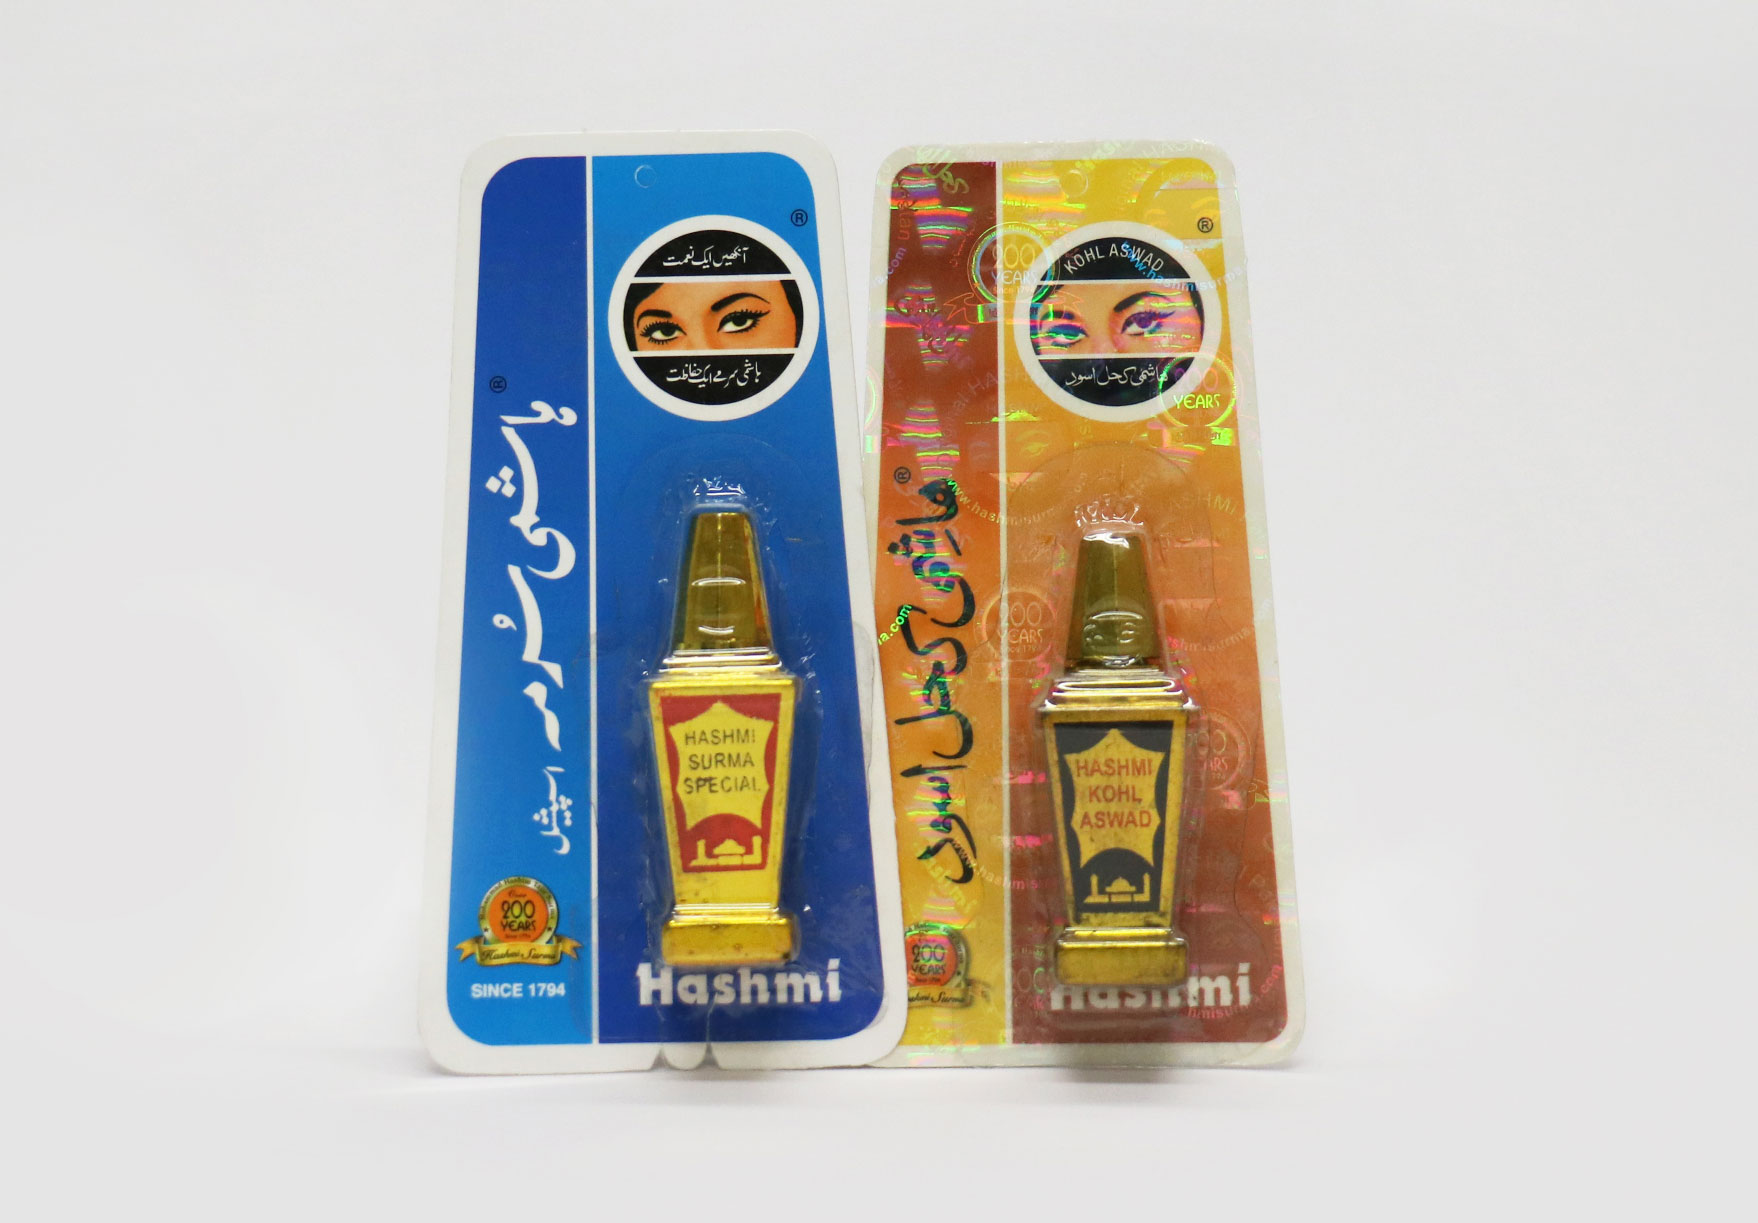 Photo of eyeliner products branded 'Hashmi Surma Special' and 'Hashmi Kohl Aswad'.